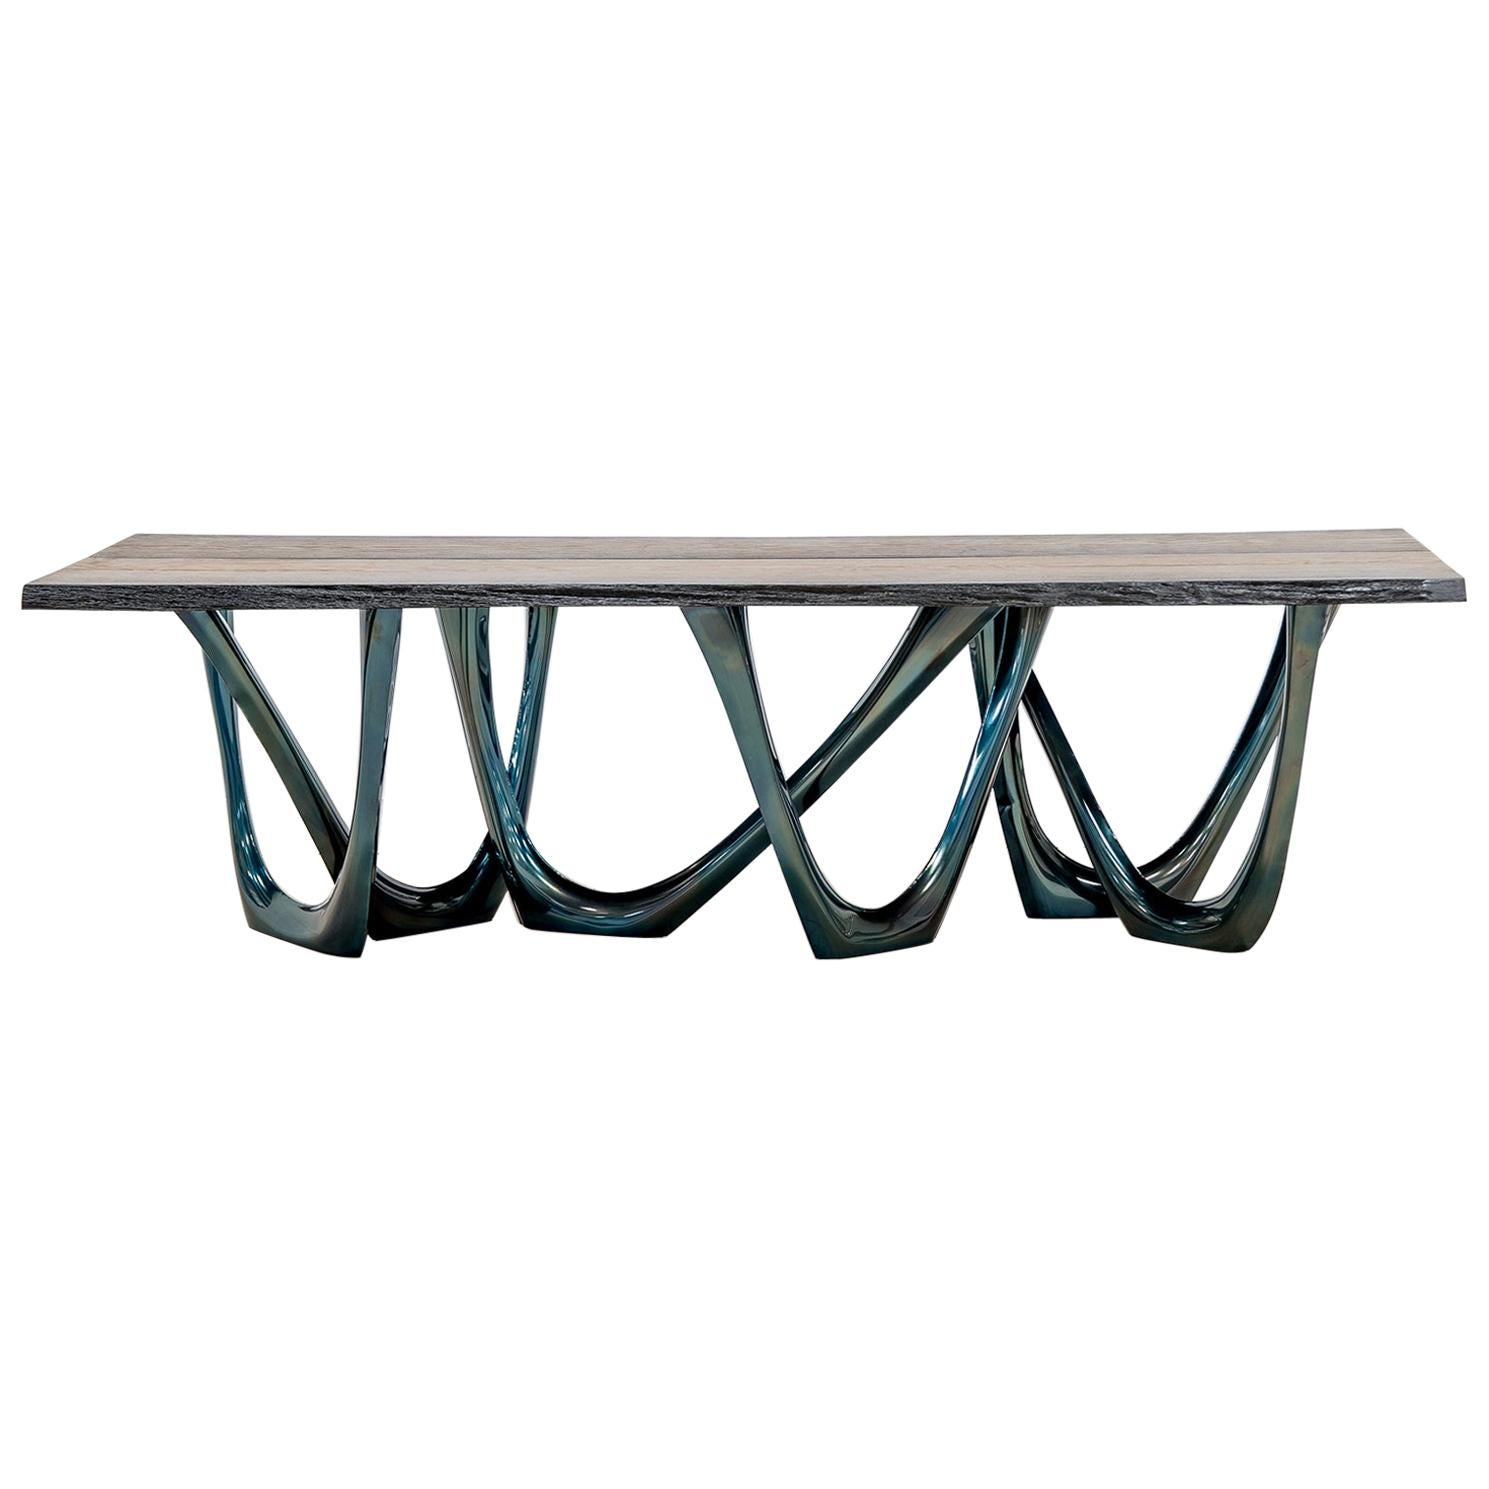 G-Table Cosmos with Granite Top by Zieta